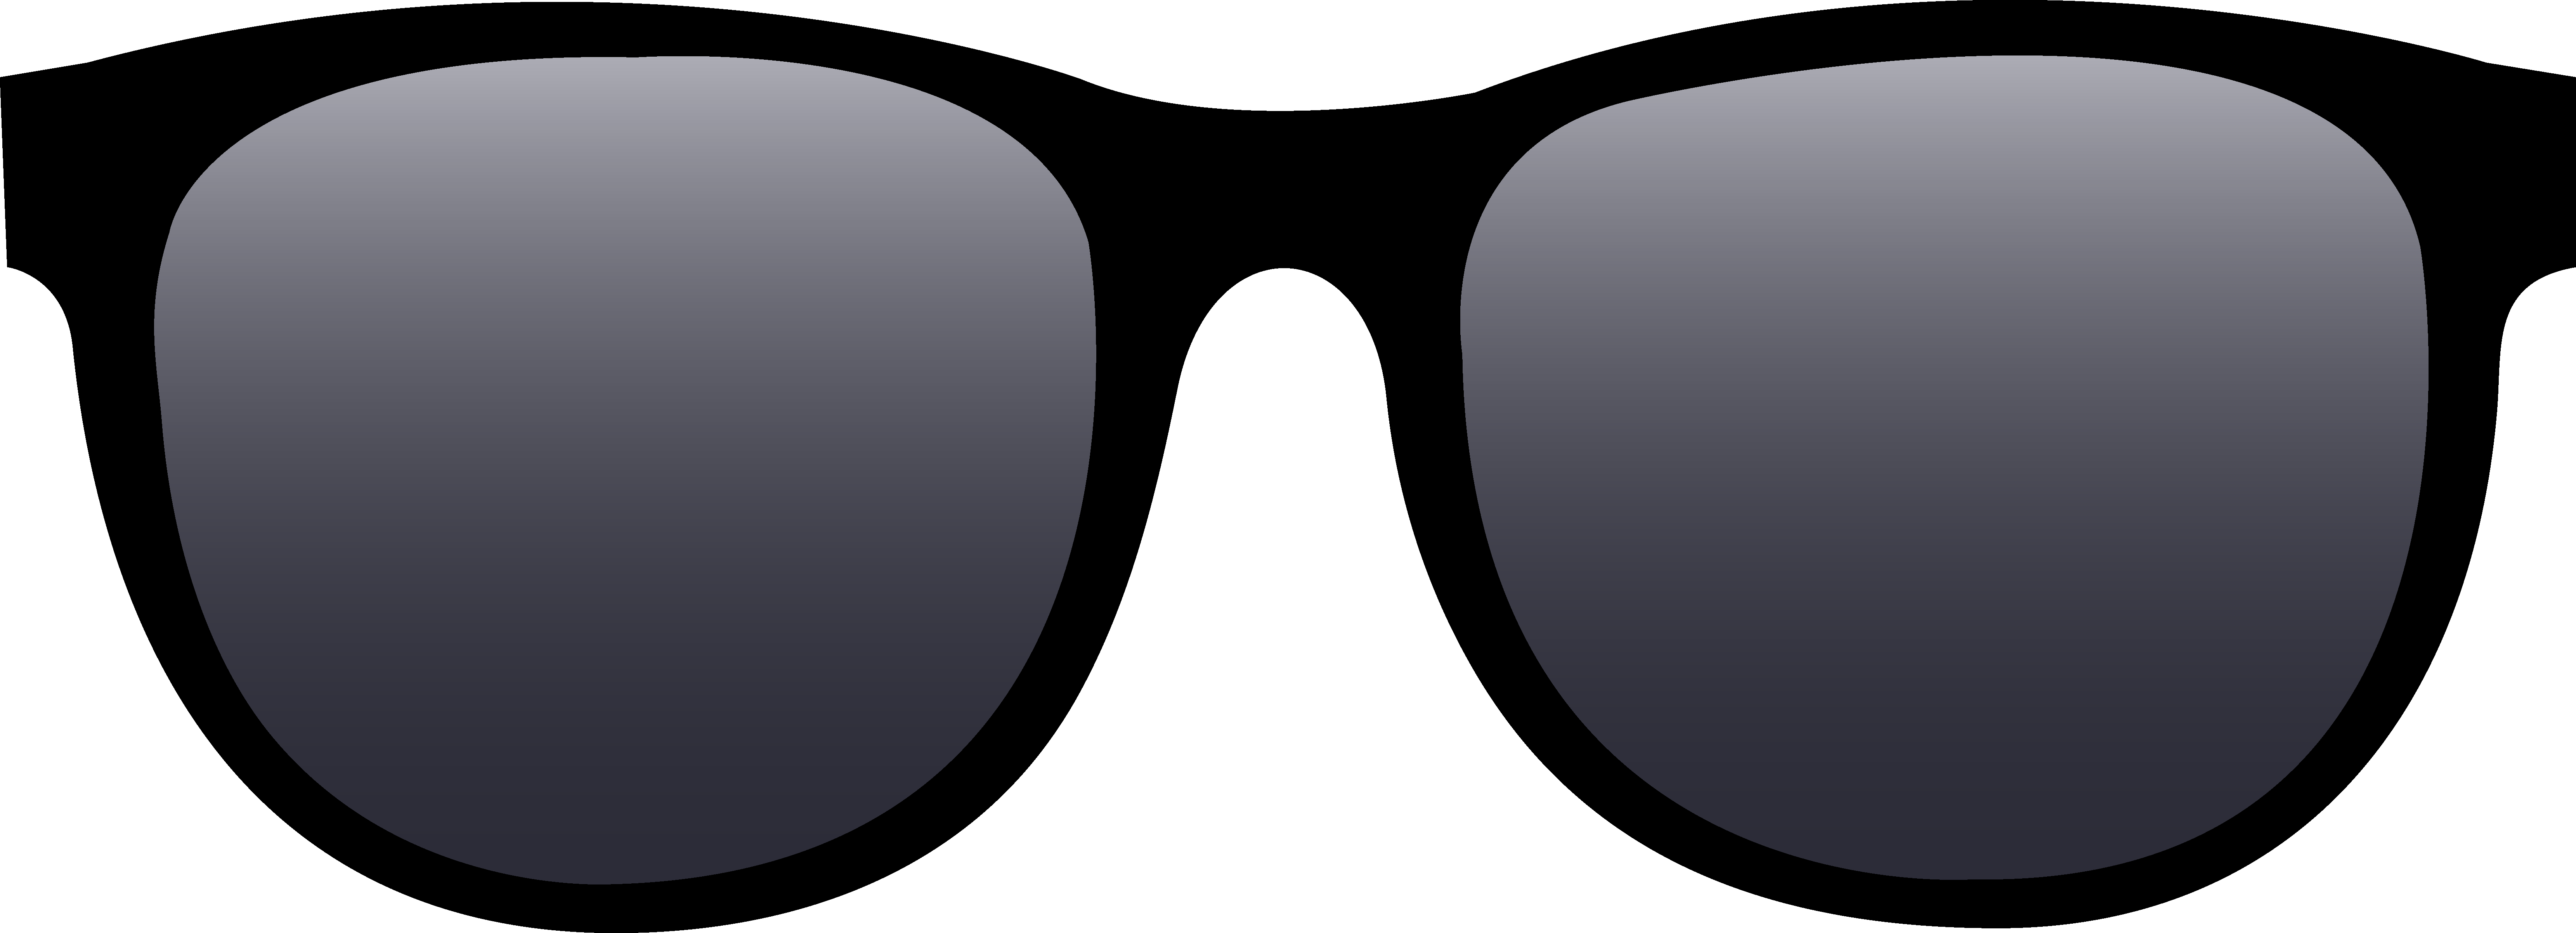 Sunglasses Png Clipart Images